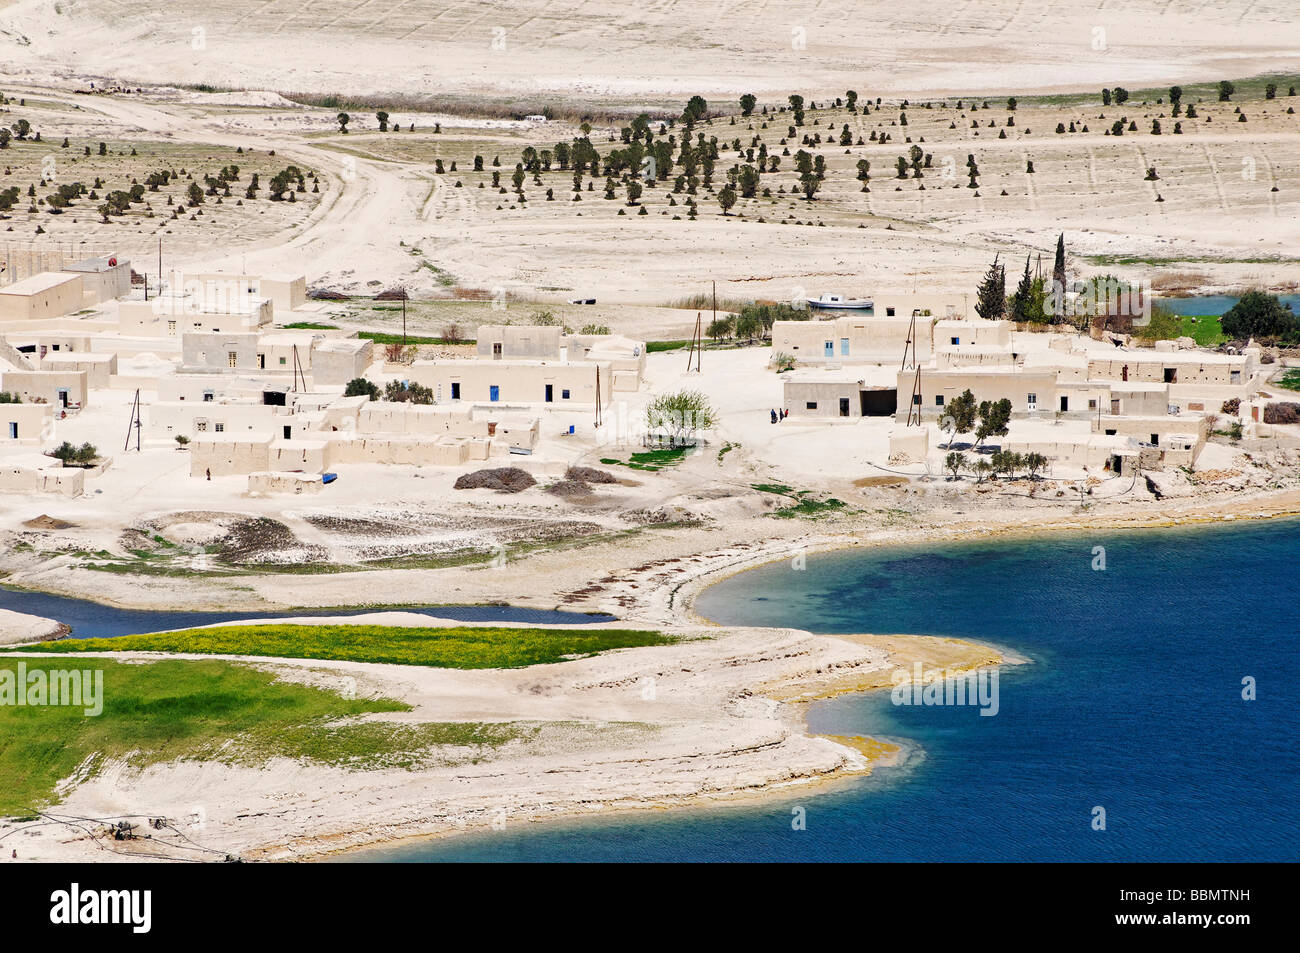 Village at the Asad reservoir of the Euphrates, Syria, Asia - Stock Image